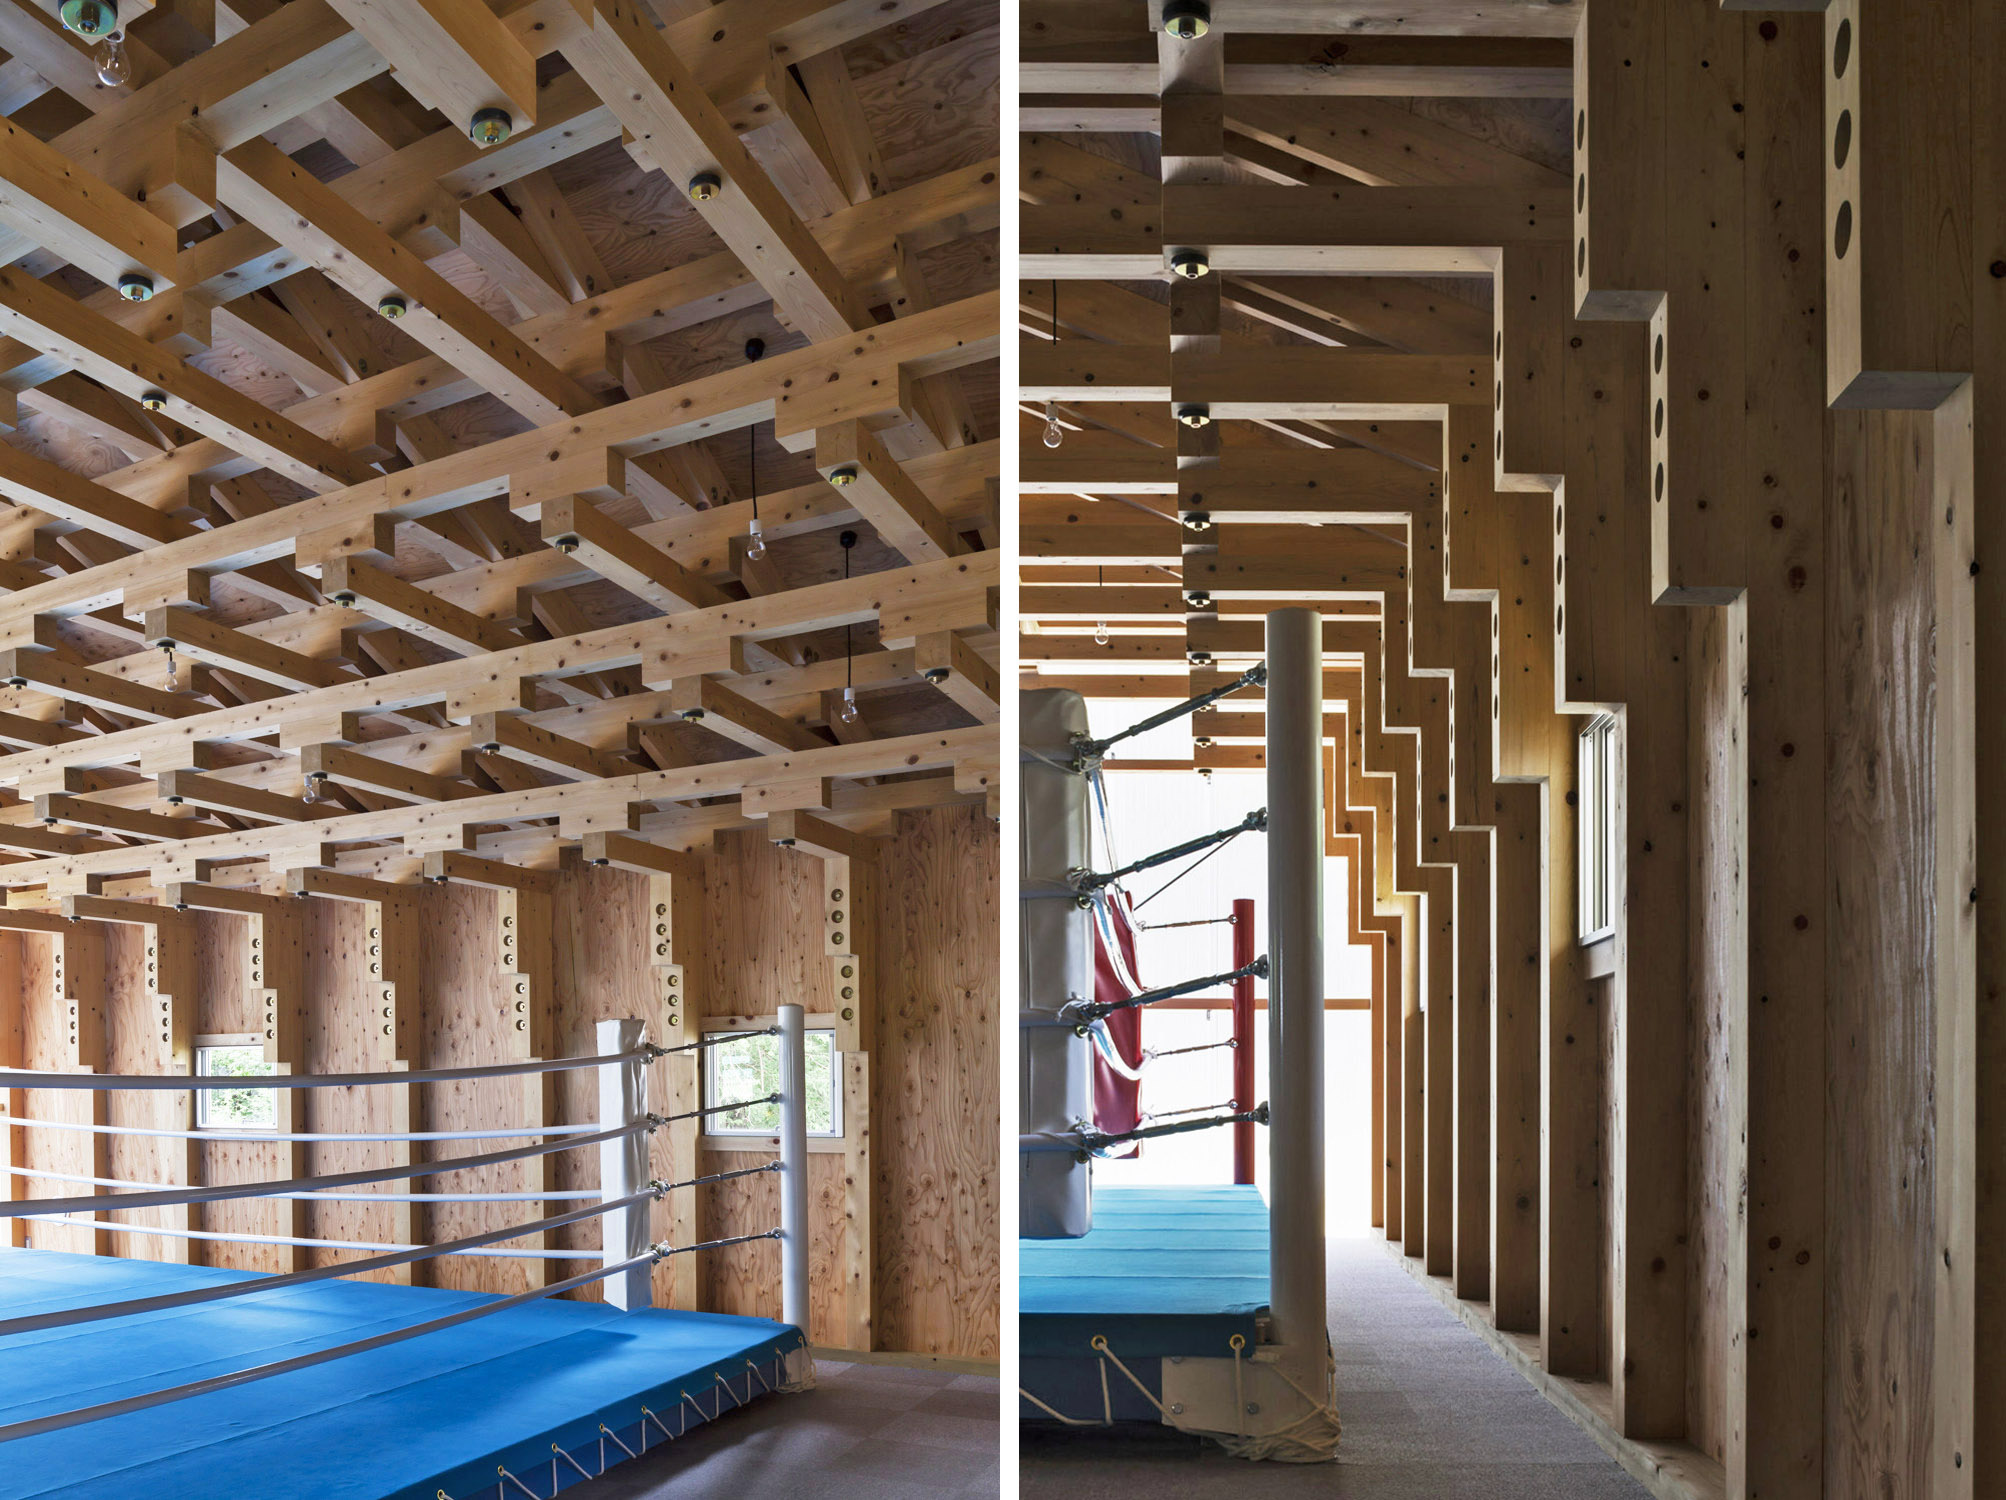 Boxing Club - FT Architects : veduta della struttura portante